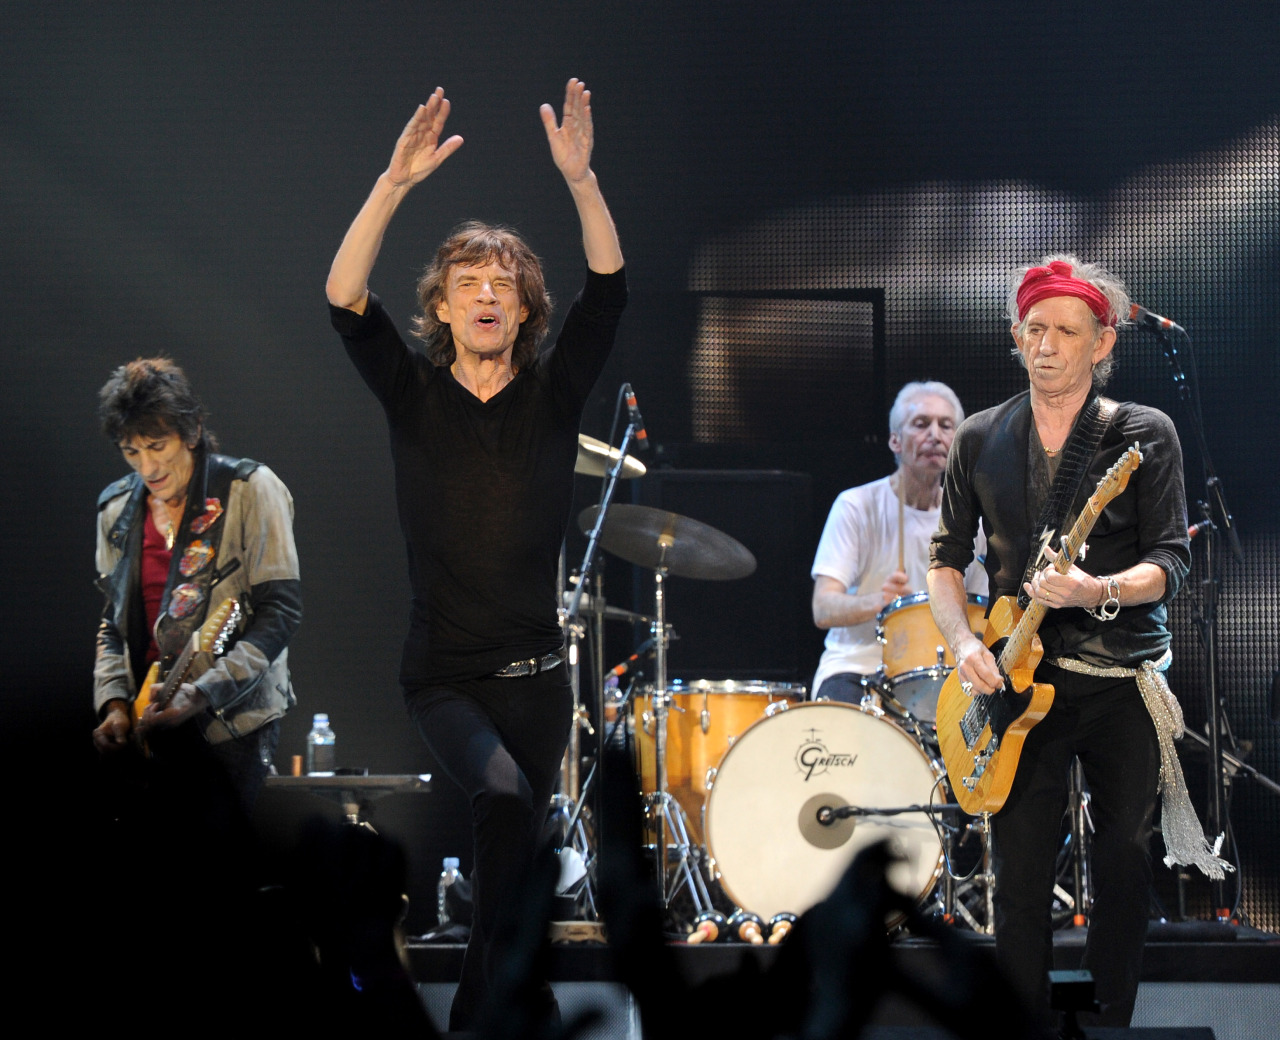 BIG MUSIC NEWS! The Rolling Stones will be performing at MGM Grand Garden Arena on May 11. Watch this video to learn more. Tickets go on sale Friday 4/19 at 10am at www.Ticketmaster.com or www.MGMGrand.com.